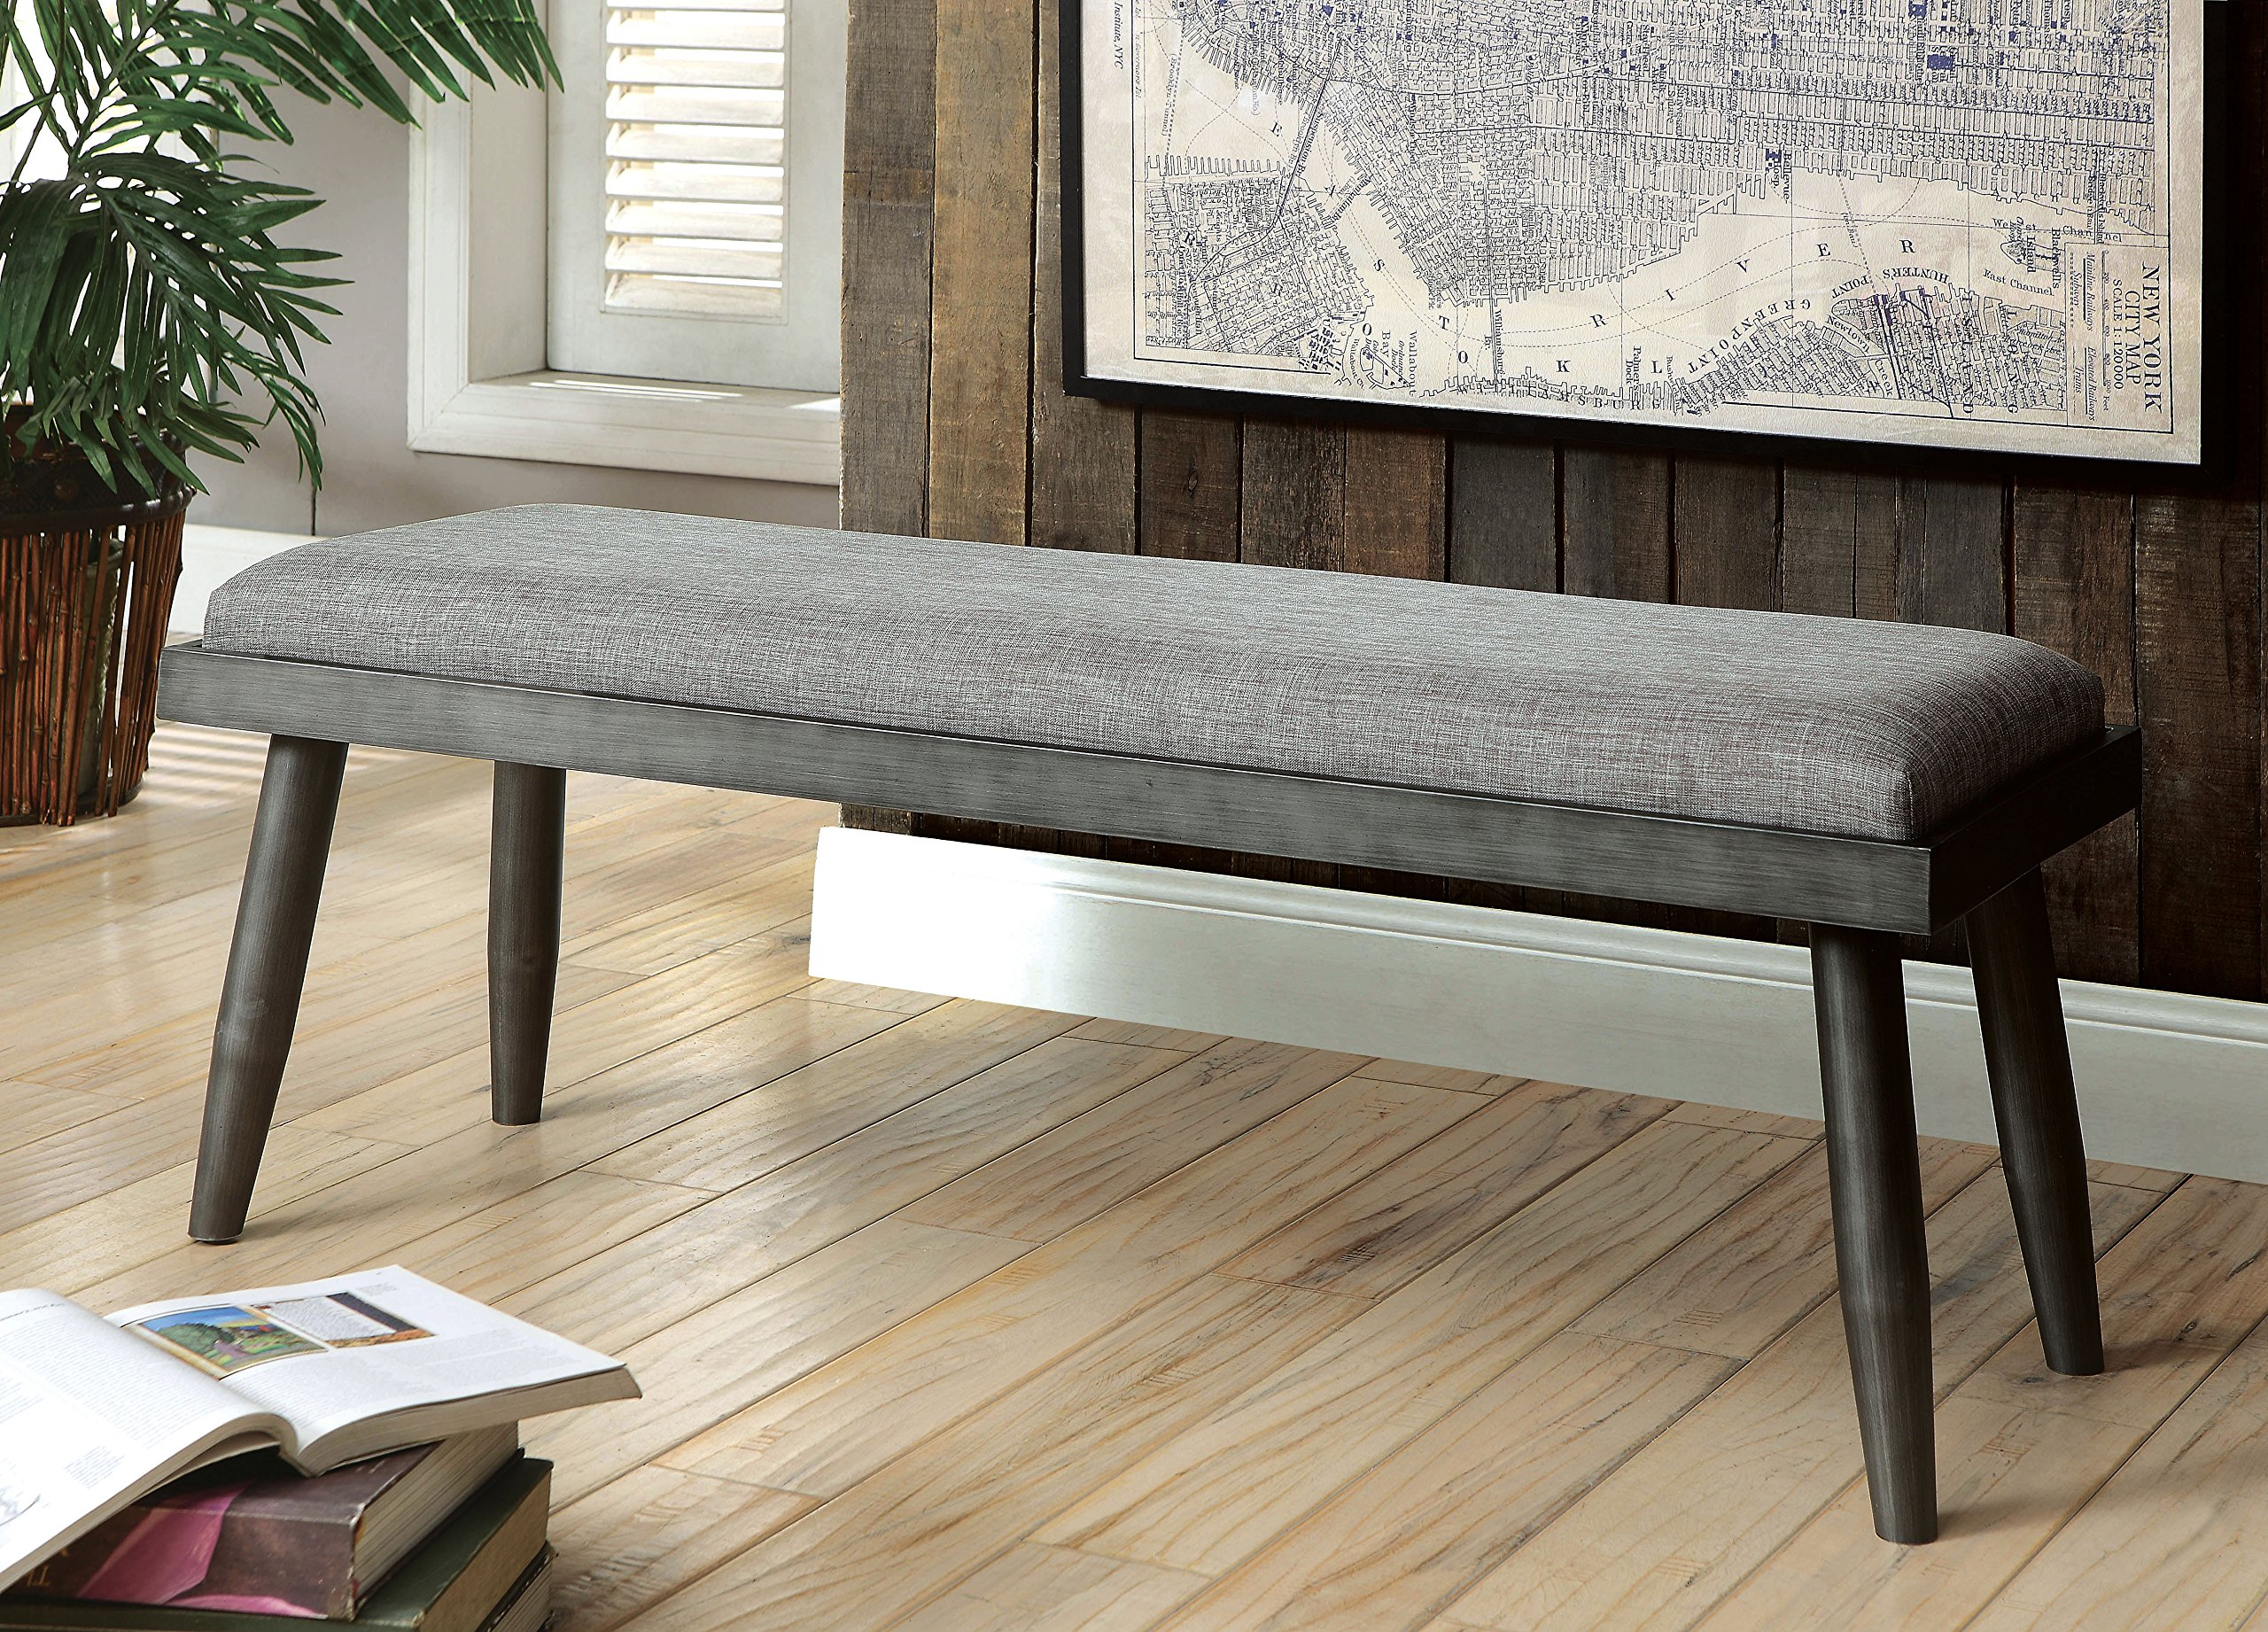 HOMES: Inside + Out IDF-3360BN Gray Lanza Mid-Century Modern Bench by HOMES: Inside + Out (Image #3)